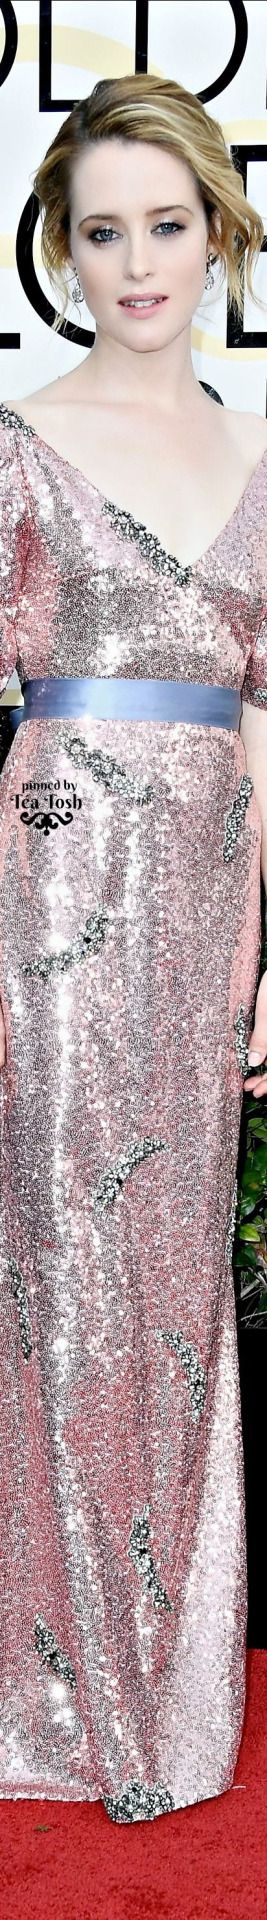 ❇Téa Tosh❇ Claire Foy, wearing a sparkling Erdem gown with Fred Leighton jewels and Nicholas Kirkwood shoes.